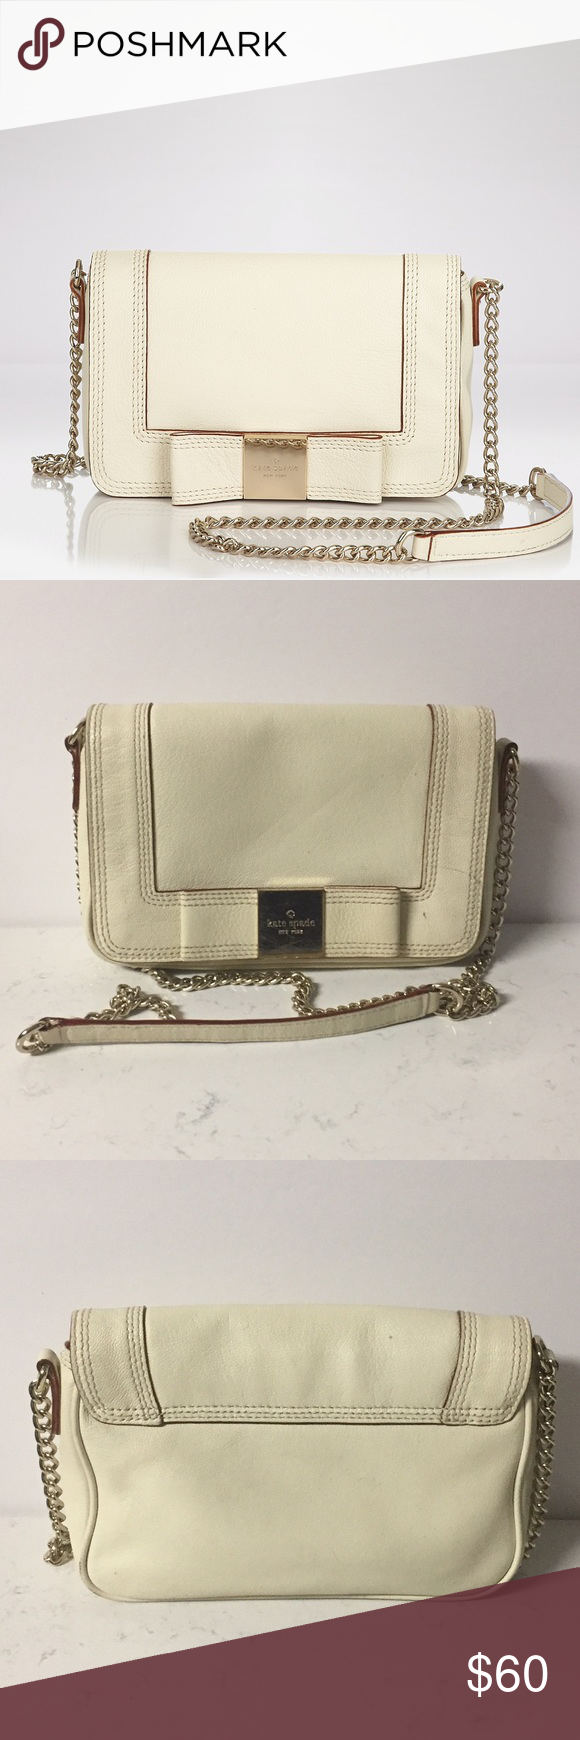 Kate Spade NY Shoulder Bag In good USED condition but such a beautiful style outside has minor signs of wear check pics and inside has removable signs of wear on the bottom beautiful bag and style. Also small marks on the Kate spade sign. 0123413789 Primrose Hill Little Kaelin style kate spade Bags Crossbody Bags